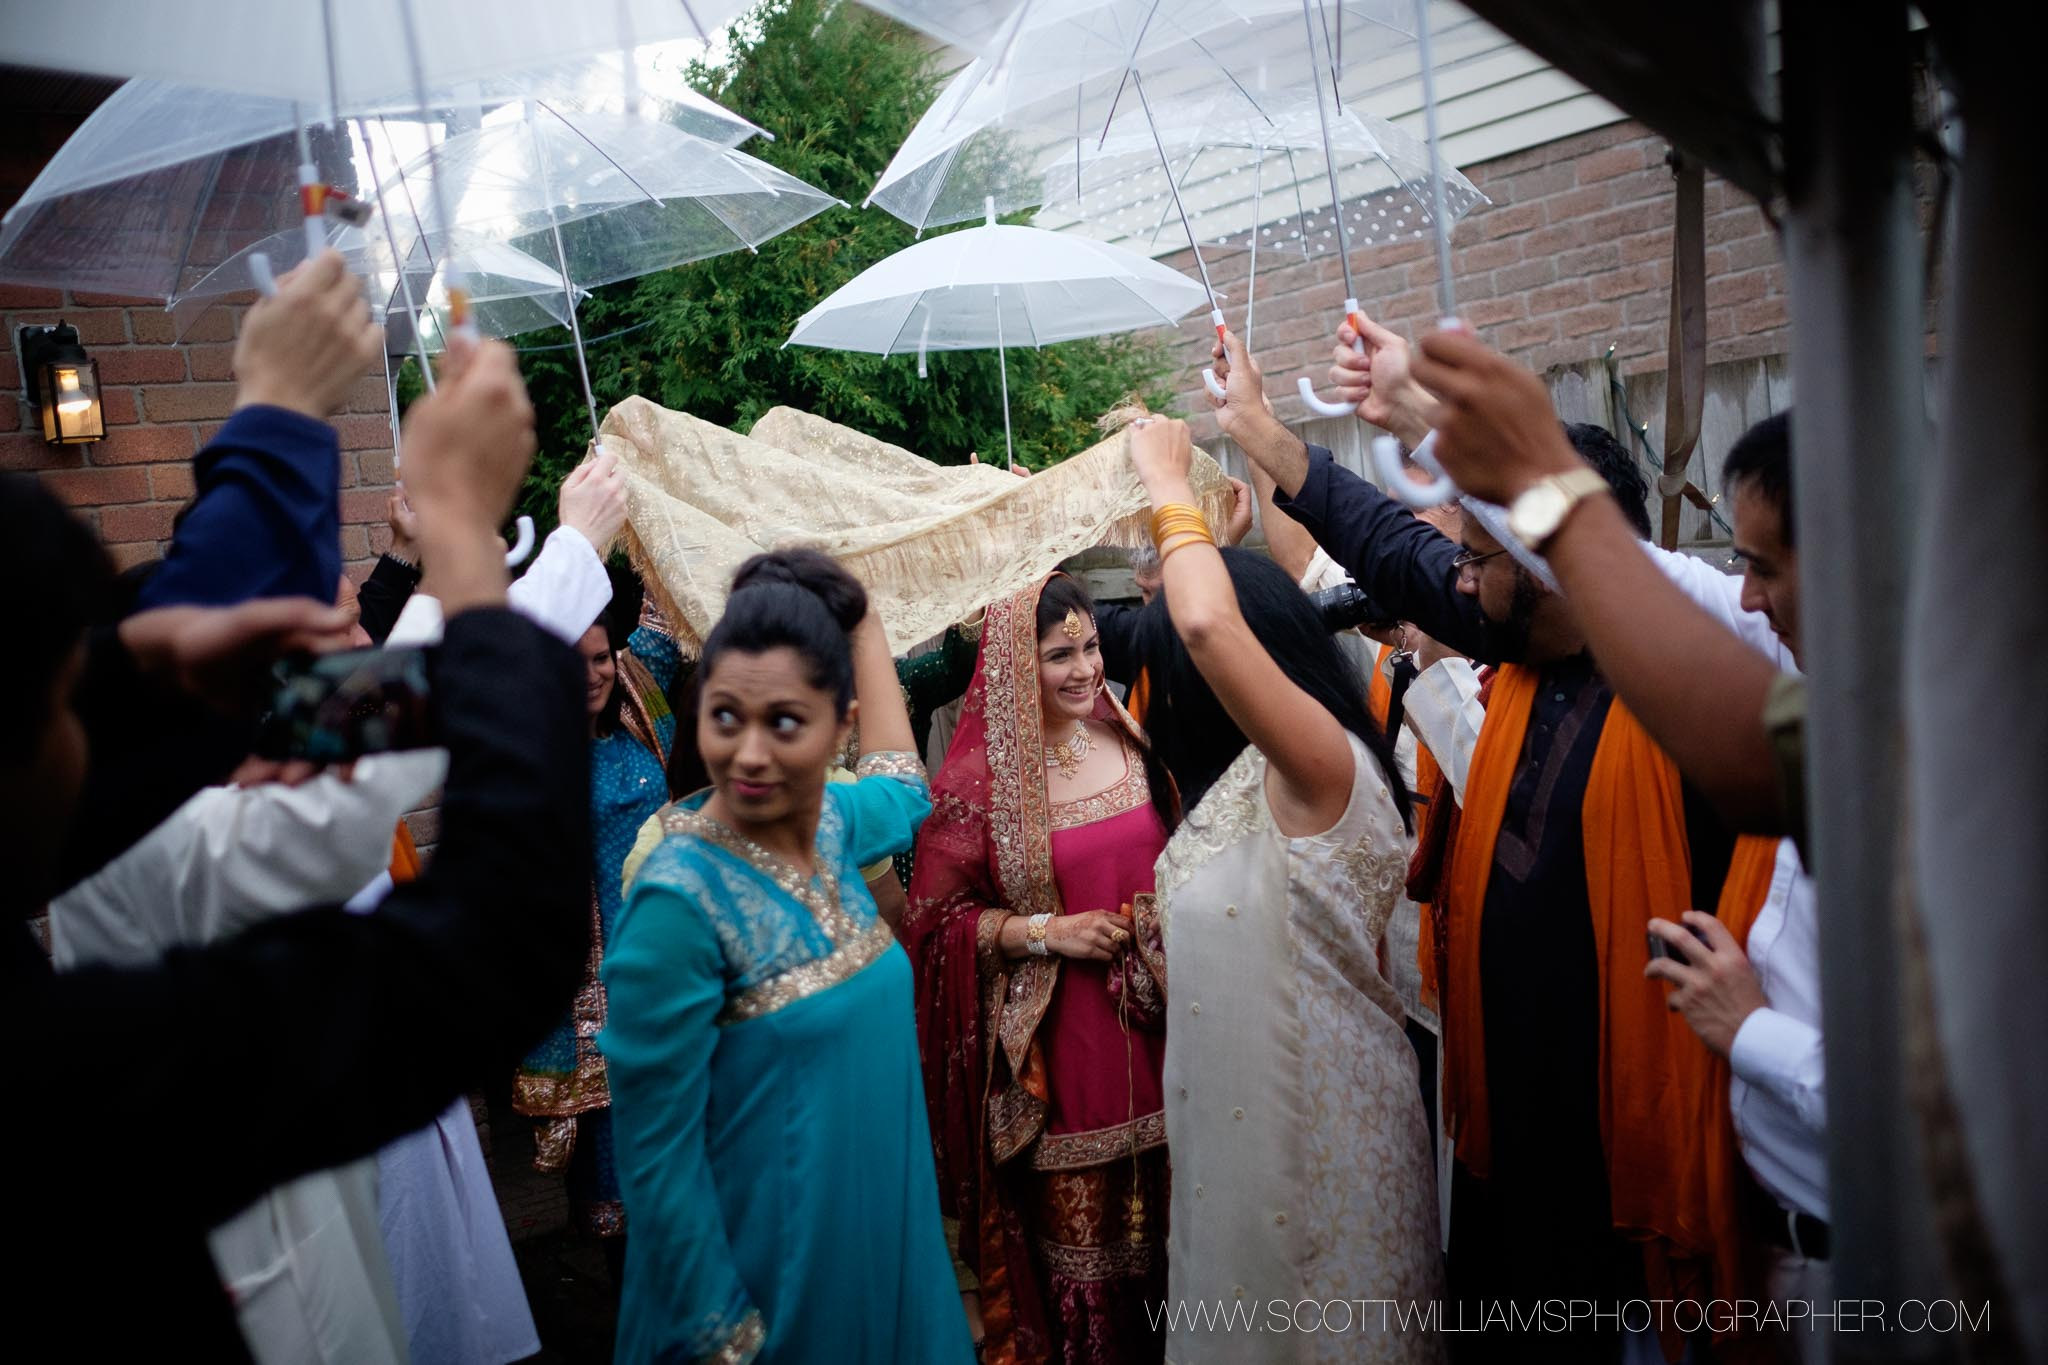 The bride makes her entrance to their backyard wedding ceremony on a rainy day.